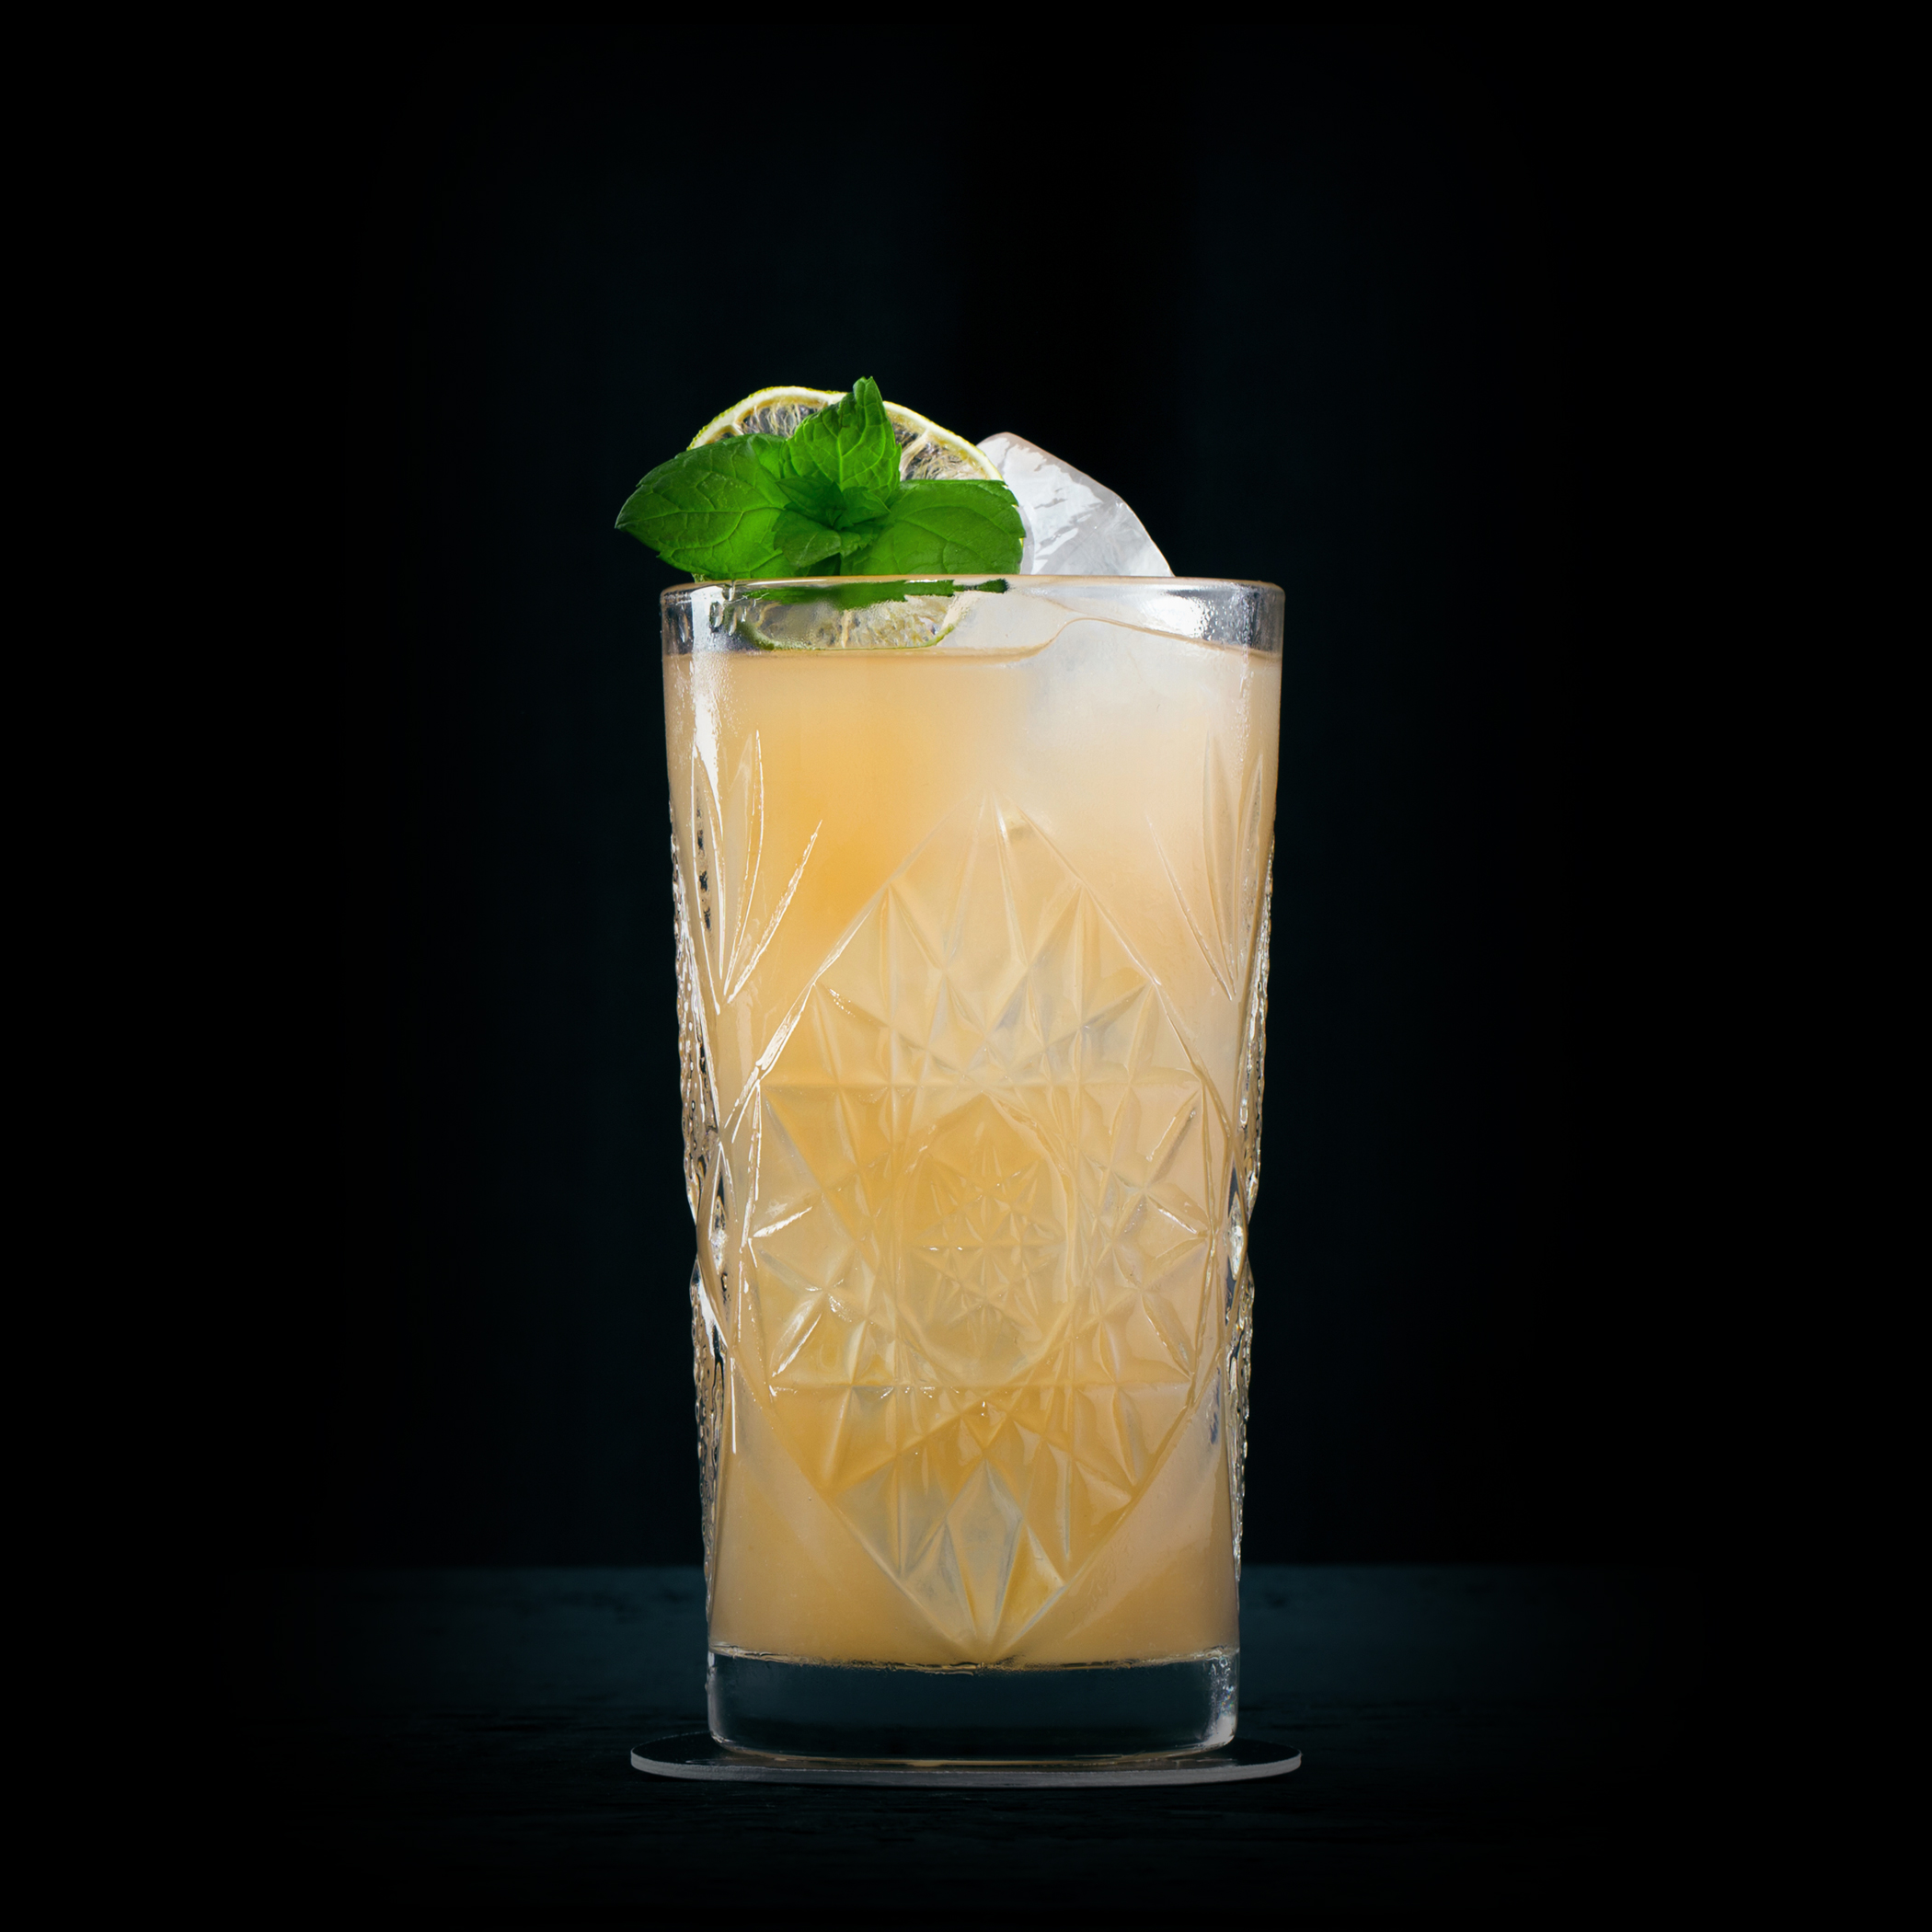 THE SMOKEY PALOMA  INGREDIENTS  - 2 oz. El Silencio Espadin  - 1 Lime Wedge  - Fill w/ Grapefruit Soda  METHOD  Squeeze Lime Wedge and drop in